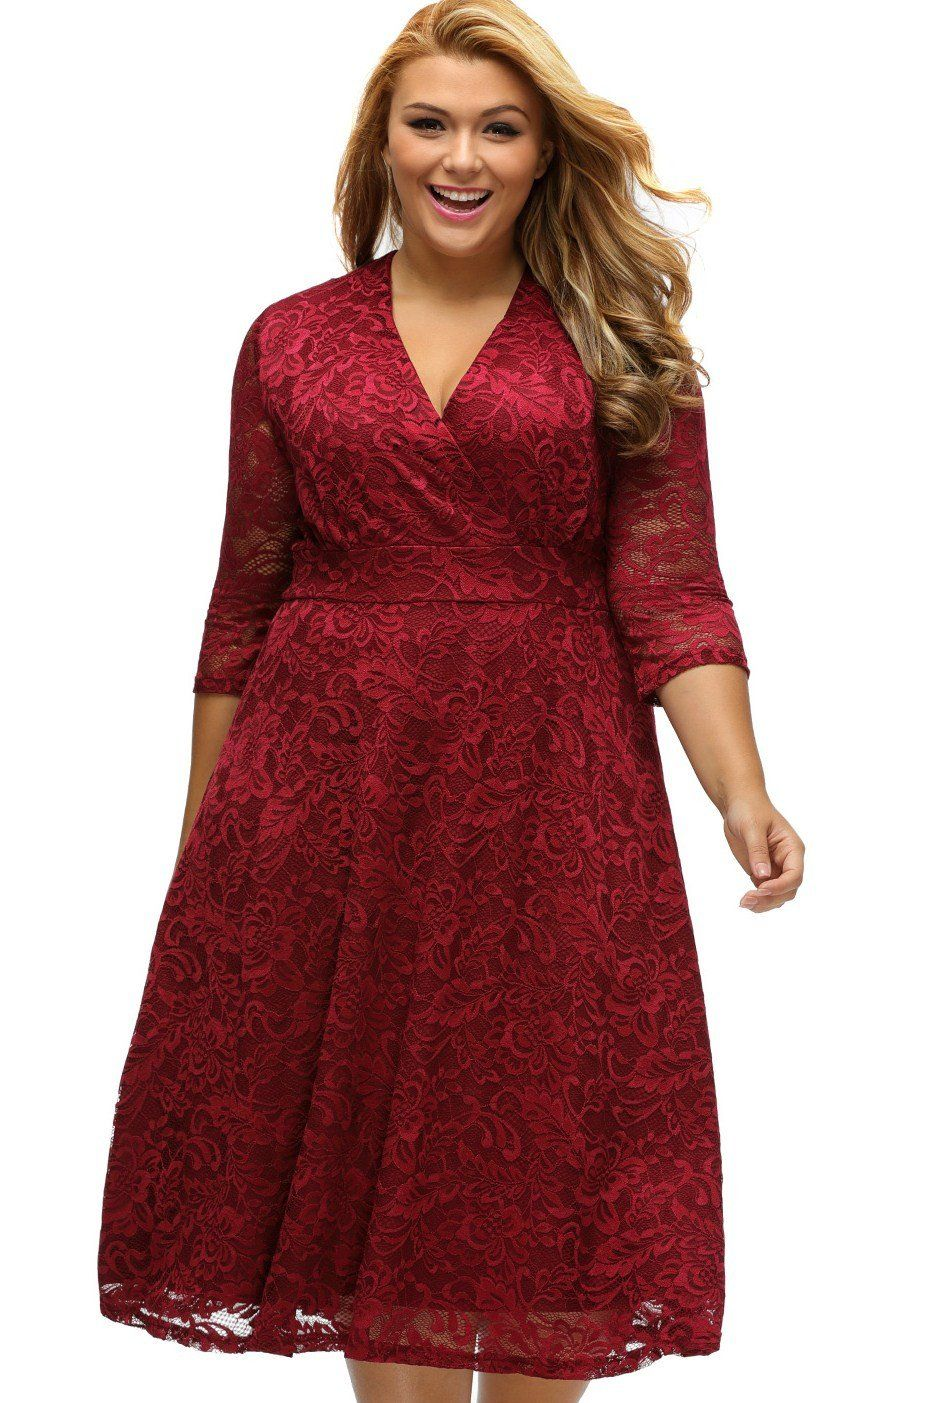 Burgundy surplice lace formal plus size skater dress modeshe